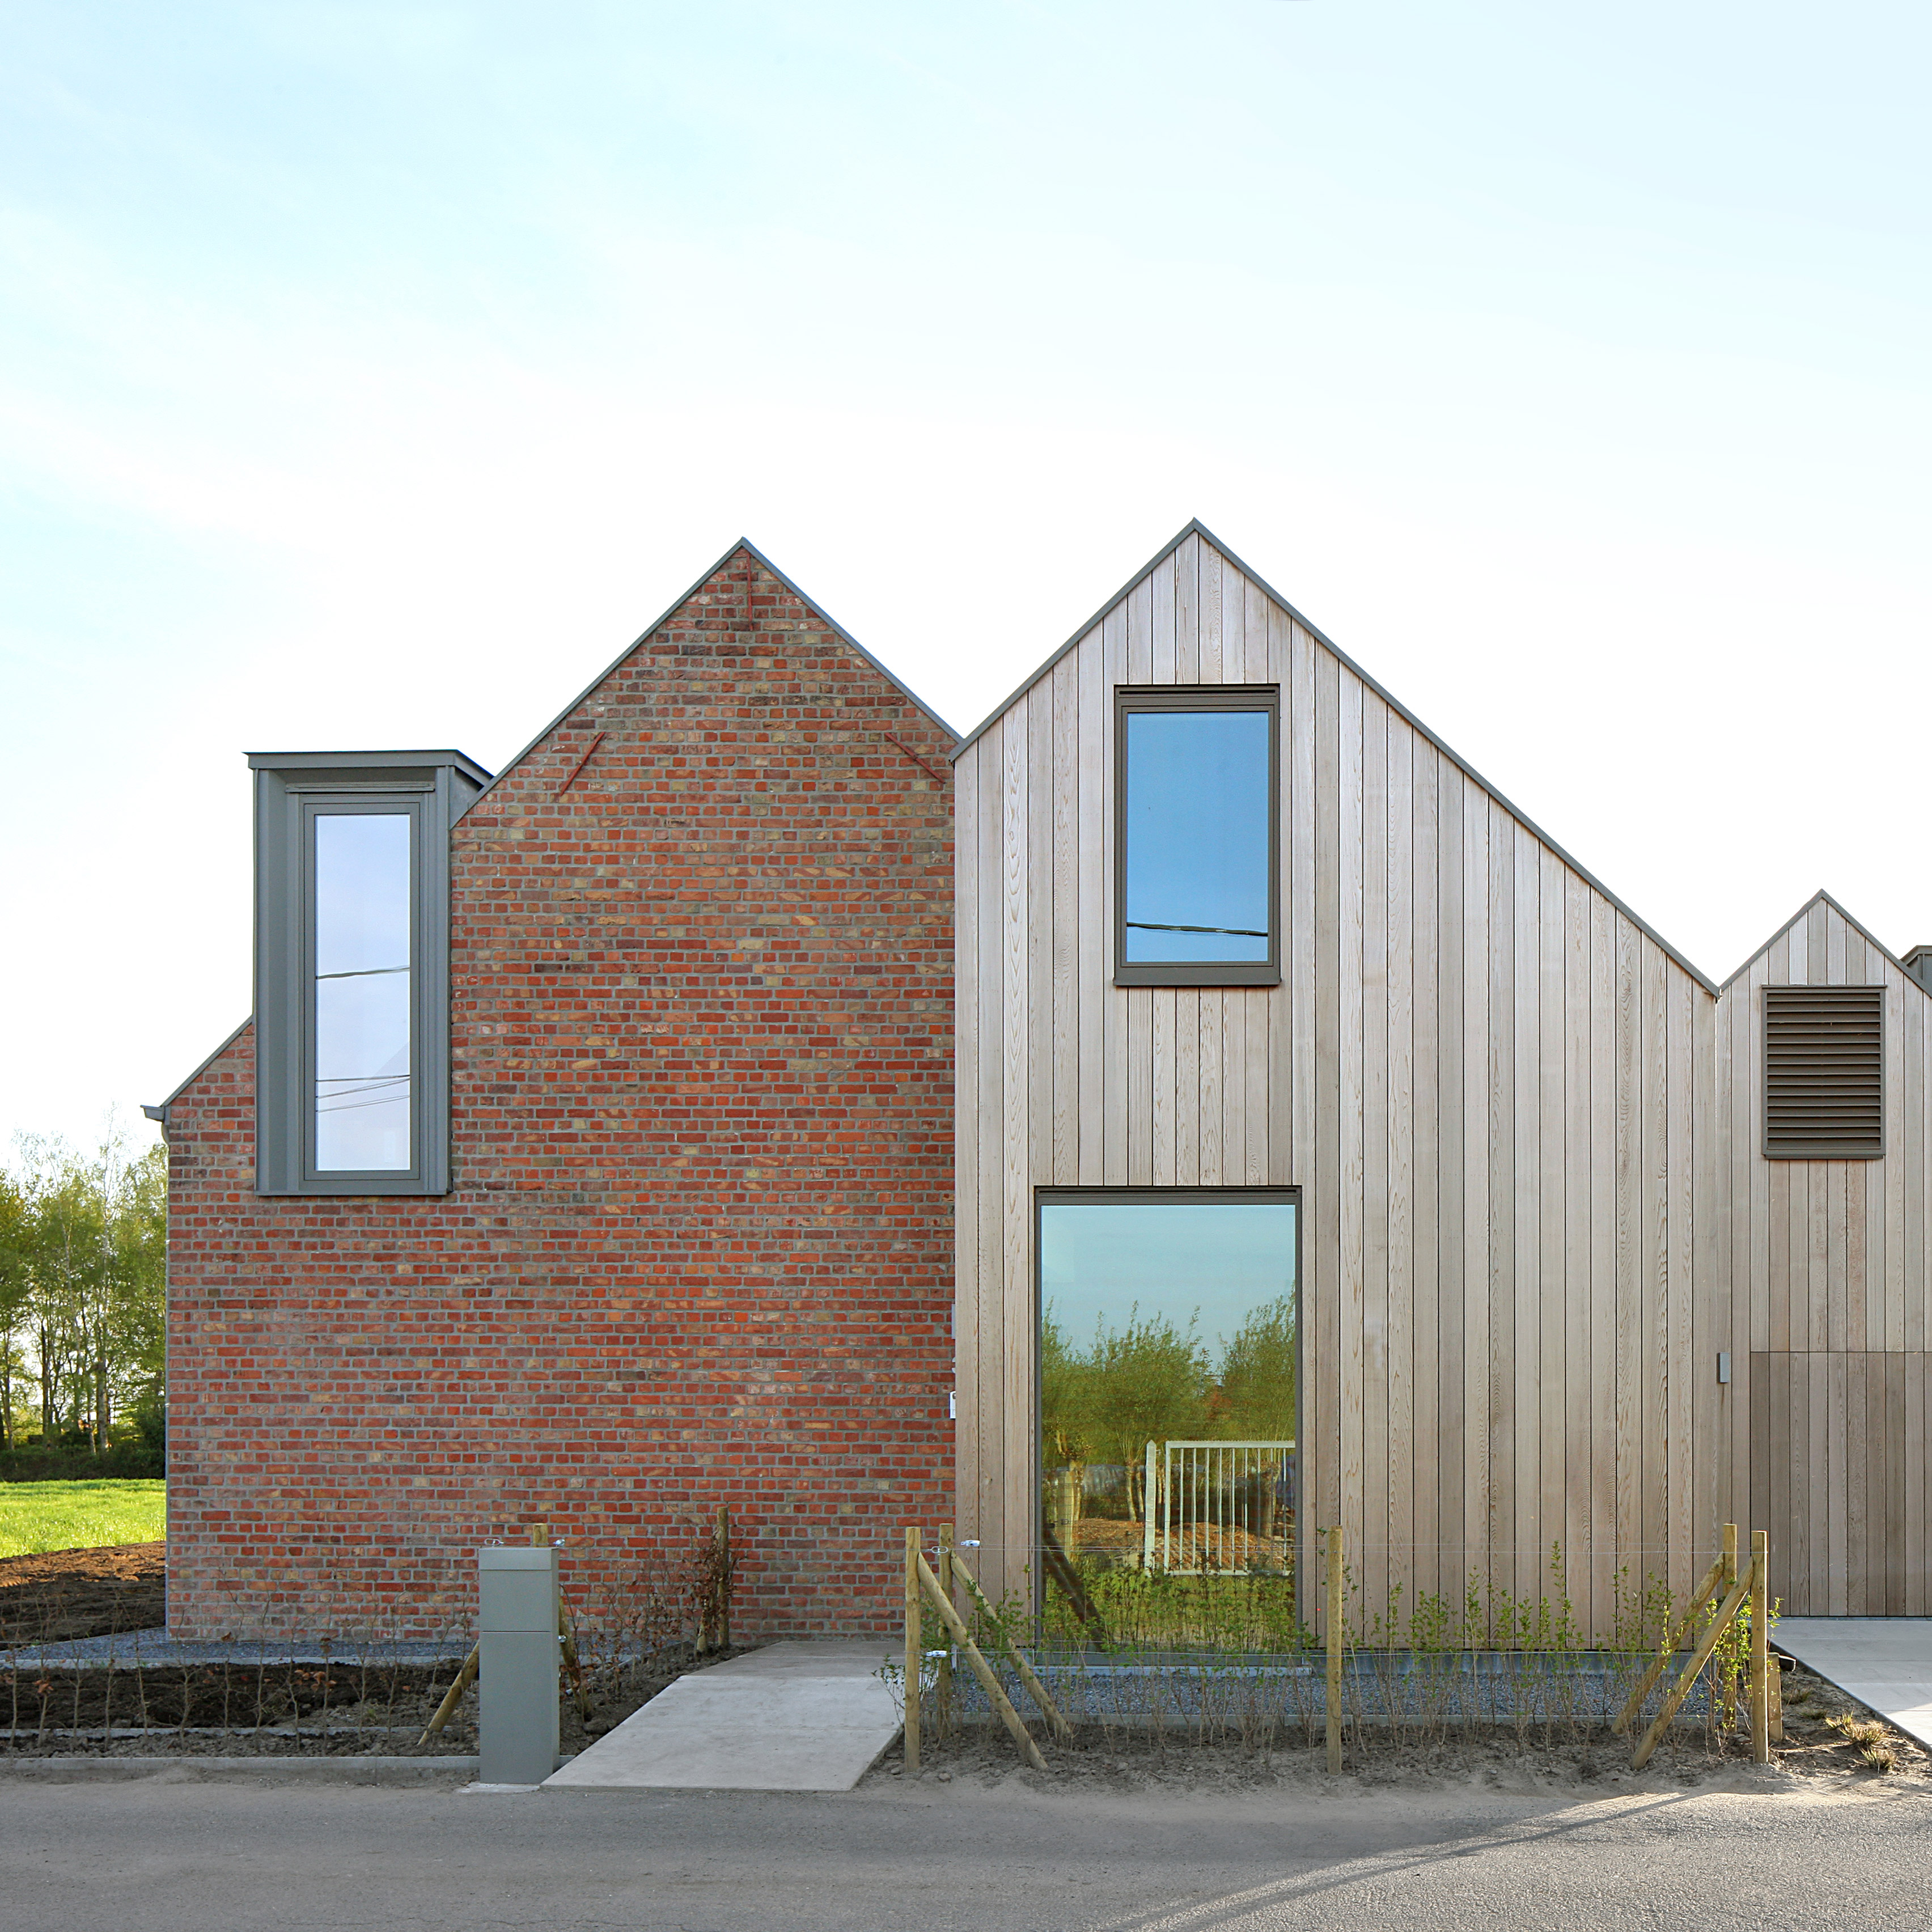 Atelier tom vanhee adds pair of gabled extensions to brick farmhouse in belgium architecture - Small belgian houses brick ...